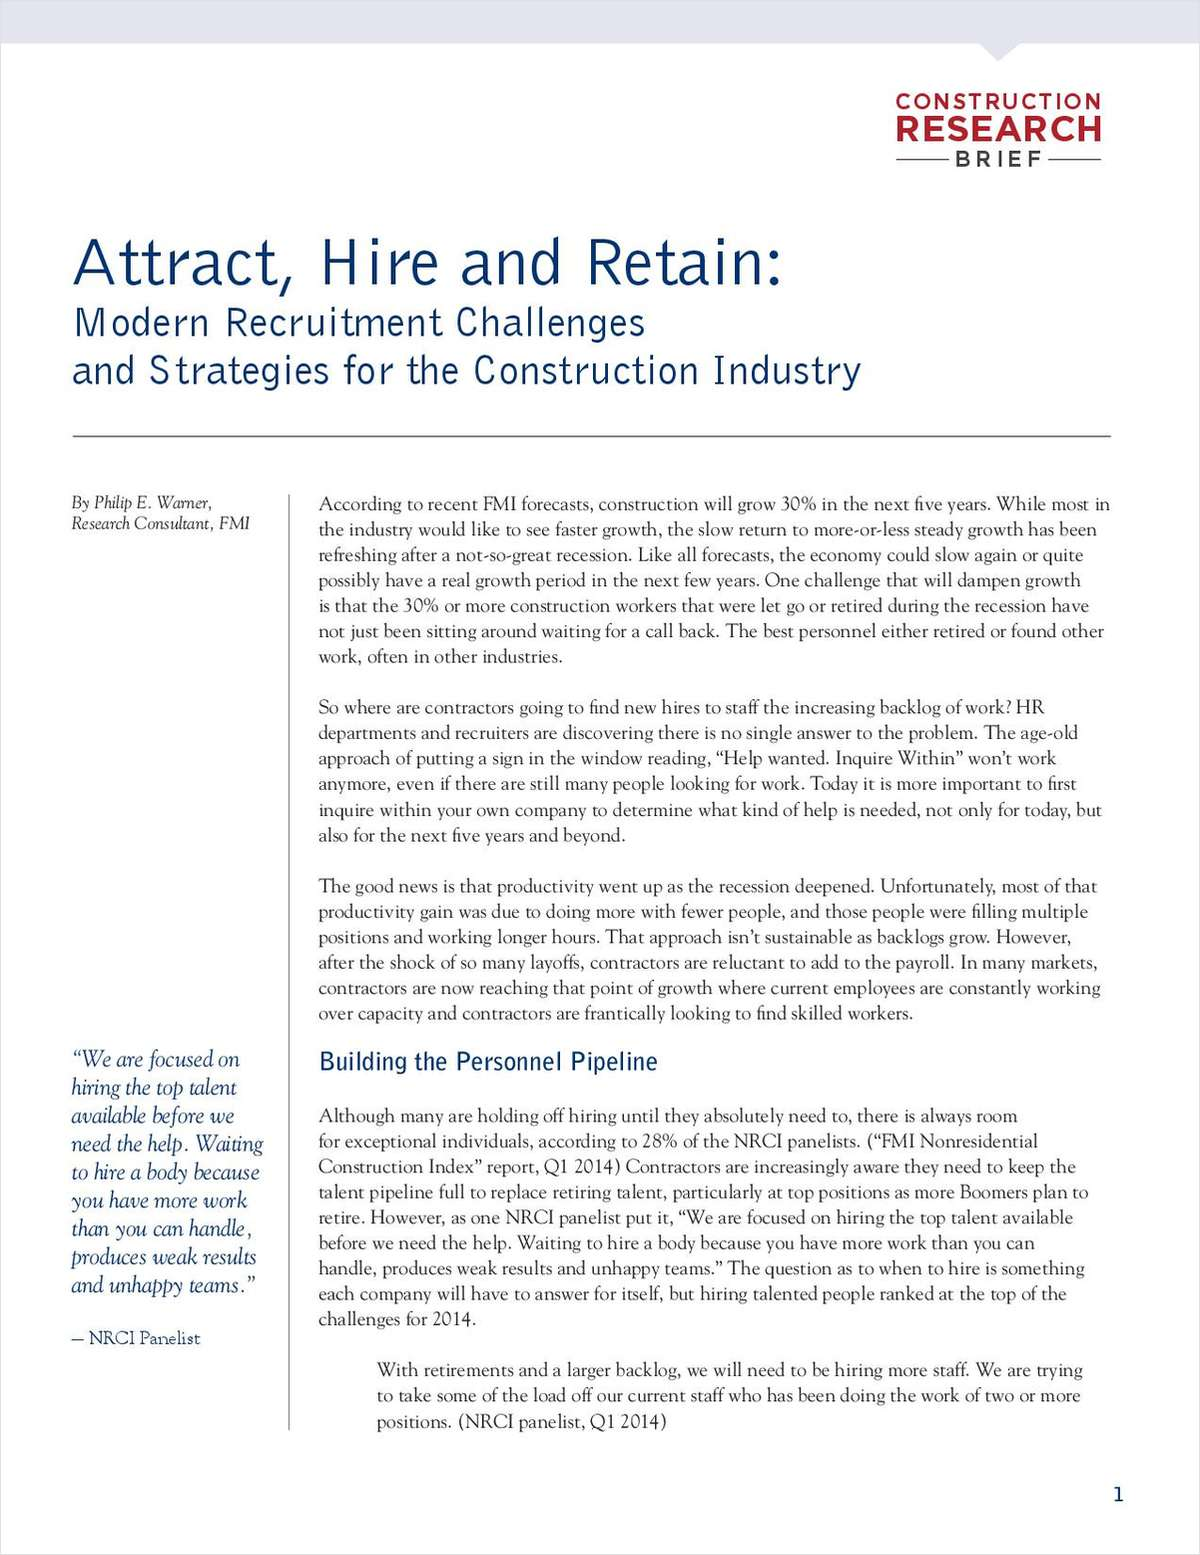 Attract, Hire and Retain: Modern Recruitment Challenges and Strategies for the Construction Industry